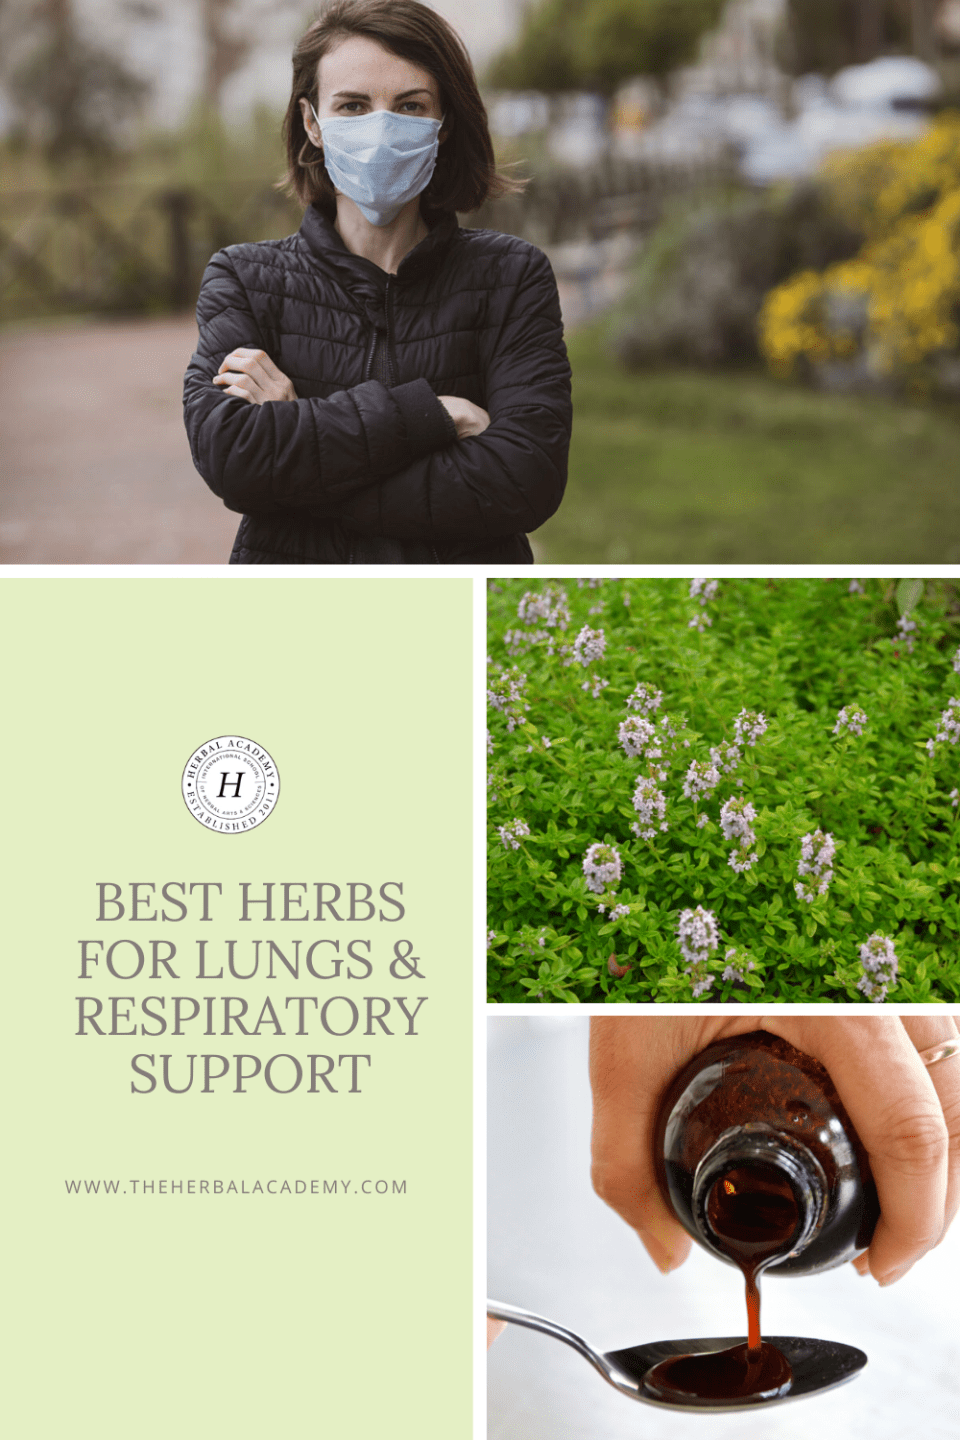 Best Herbs for Lungs and Respiratory Support | The Herbal Academy | For viral respiratory infections, turn to herbs that have strong immune or antiviral actions in addition to herbs for lungs and basic respiratory support.